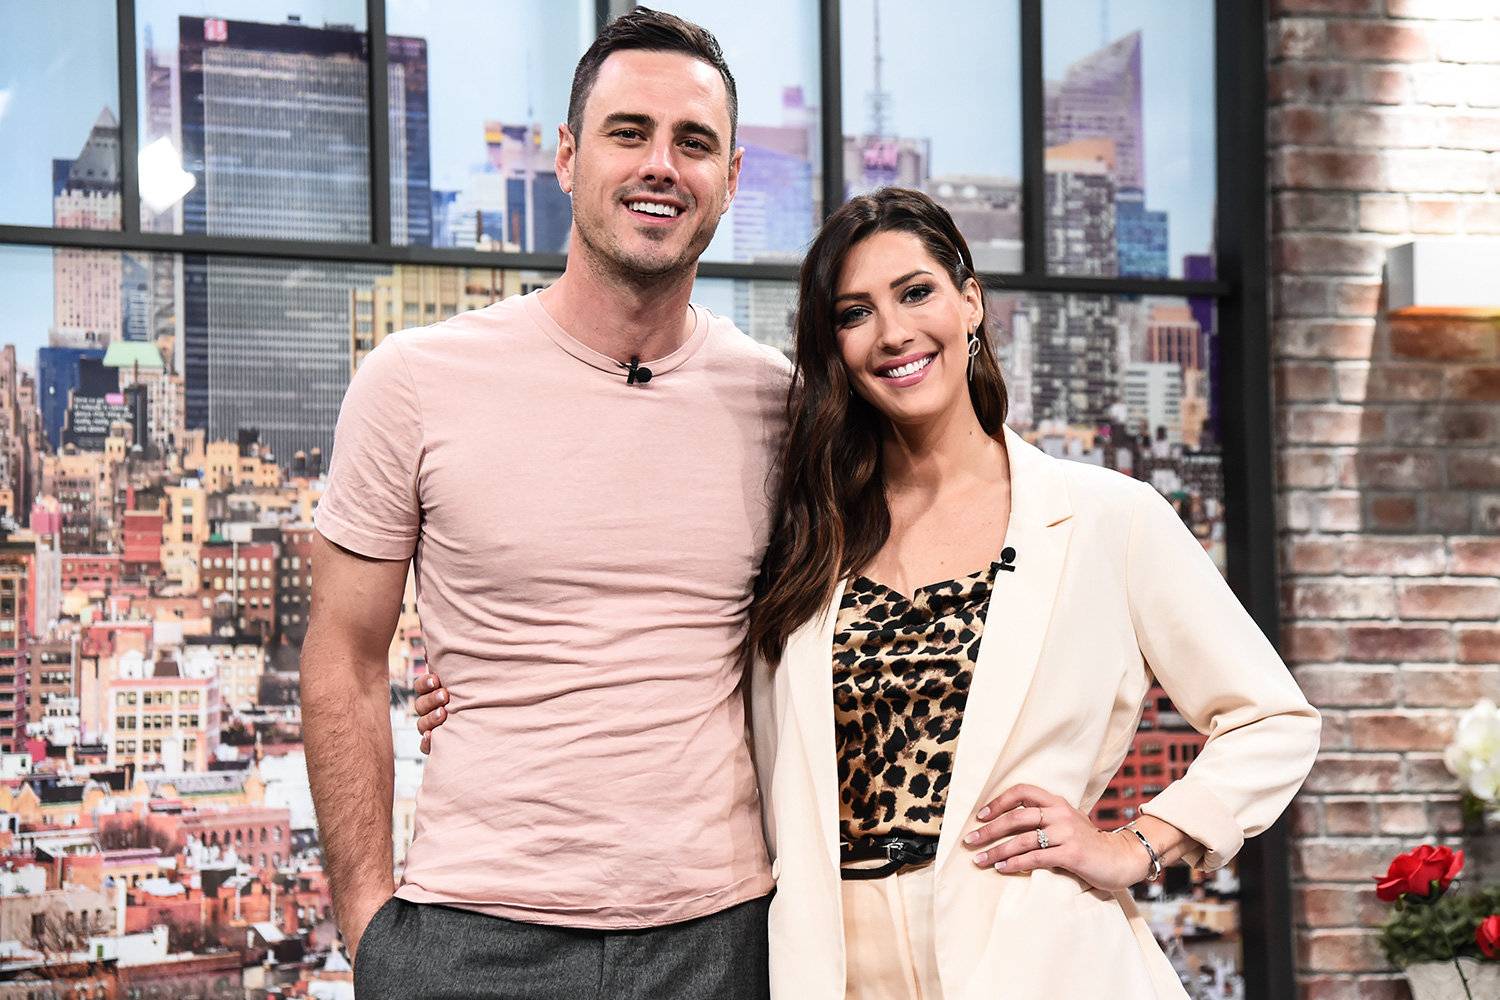 Ben Higgins and Becca Kufrin of the Bachelor visit People Now on January 28, 2020 in New York, City